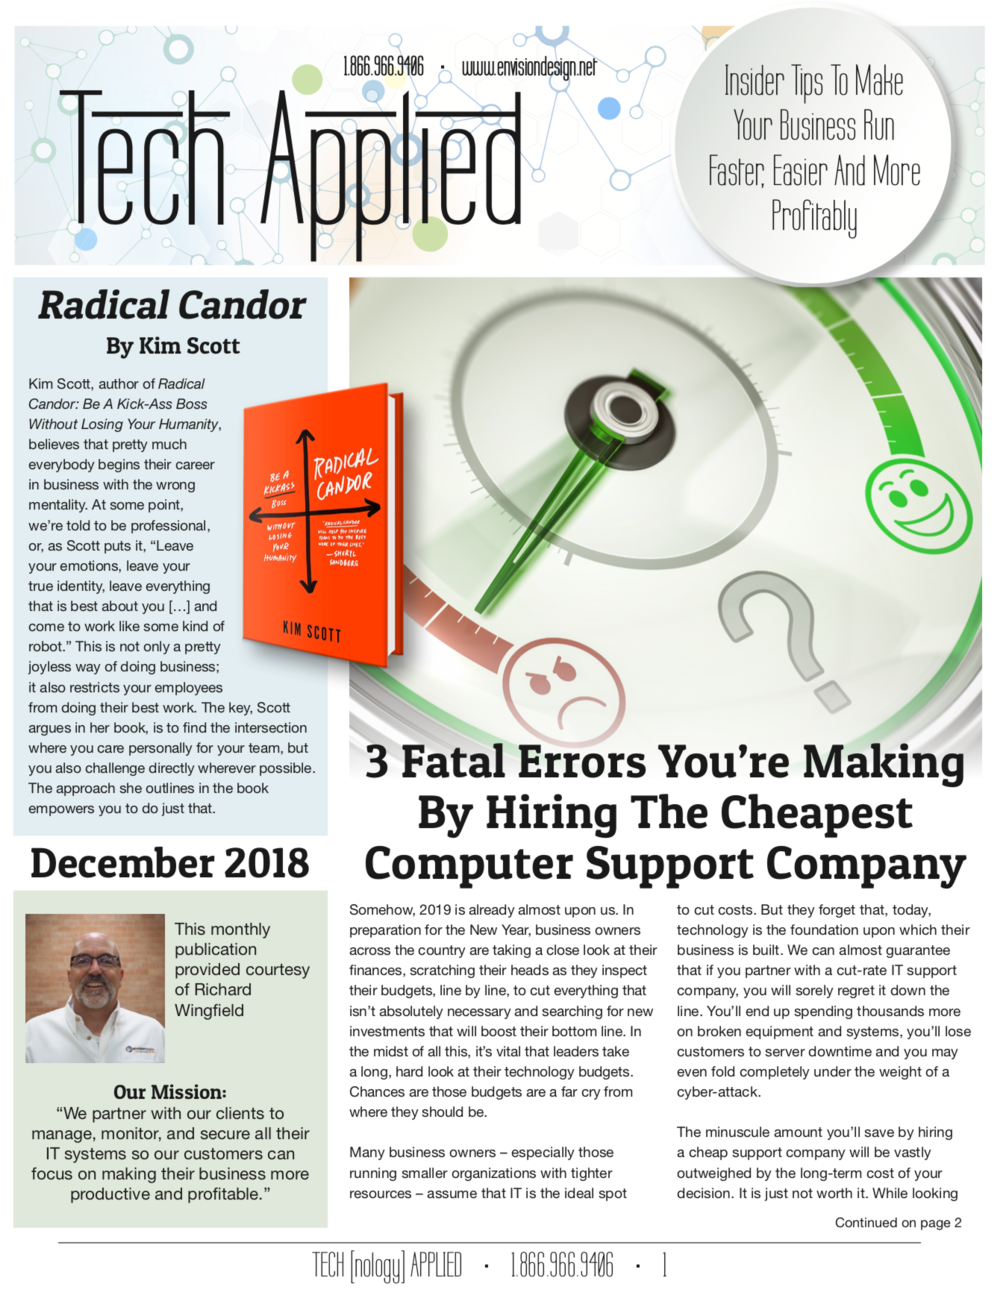 Dec. 2018 - click on the image to download a free copy